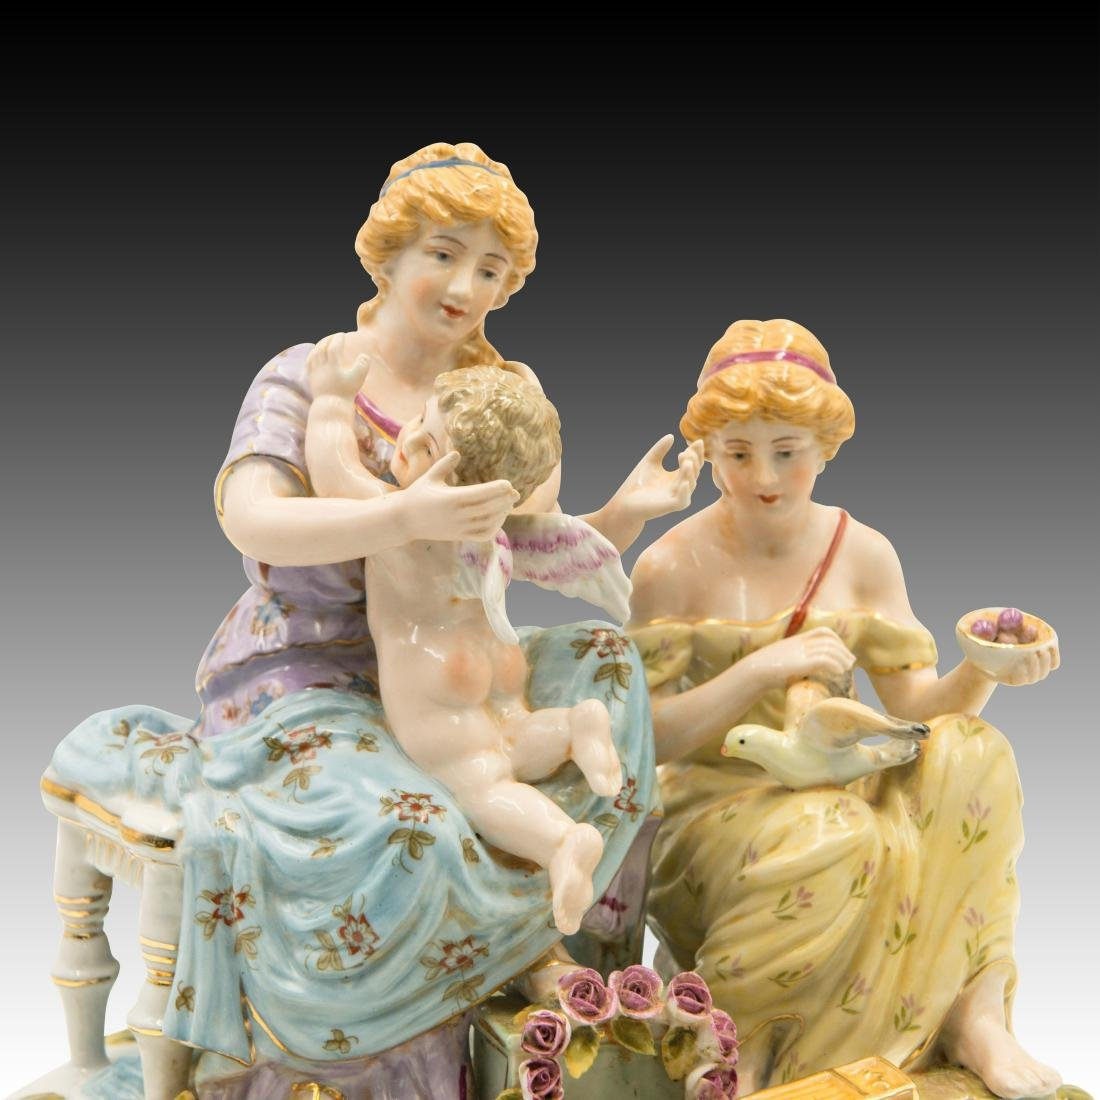 Two Women and a Cherub and Birds Figurine - 5